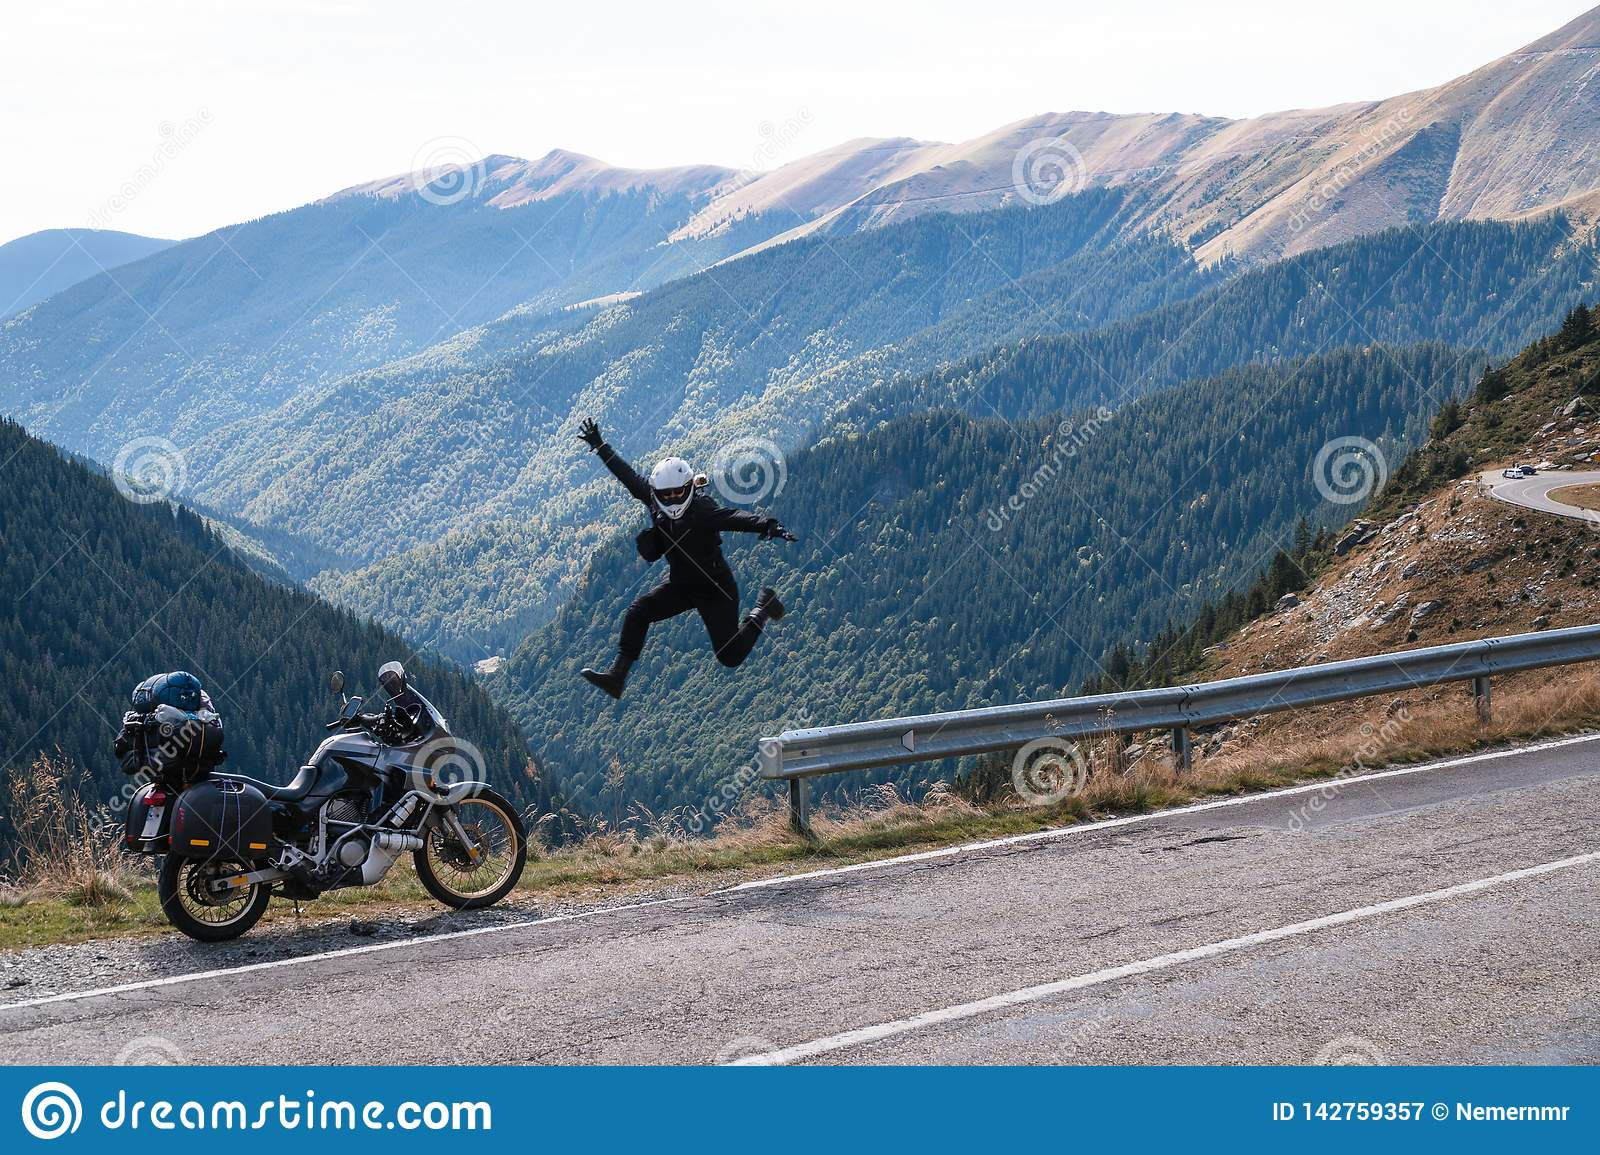 Rock n roll jump from happiness. motorcycle adventure mountain, enduro, off road, beautiful view, danger road in mountains,